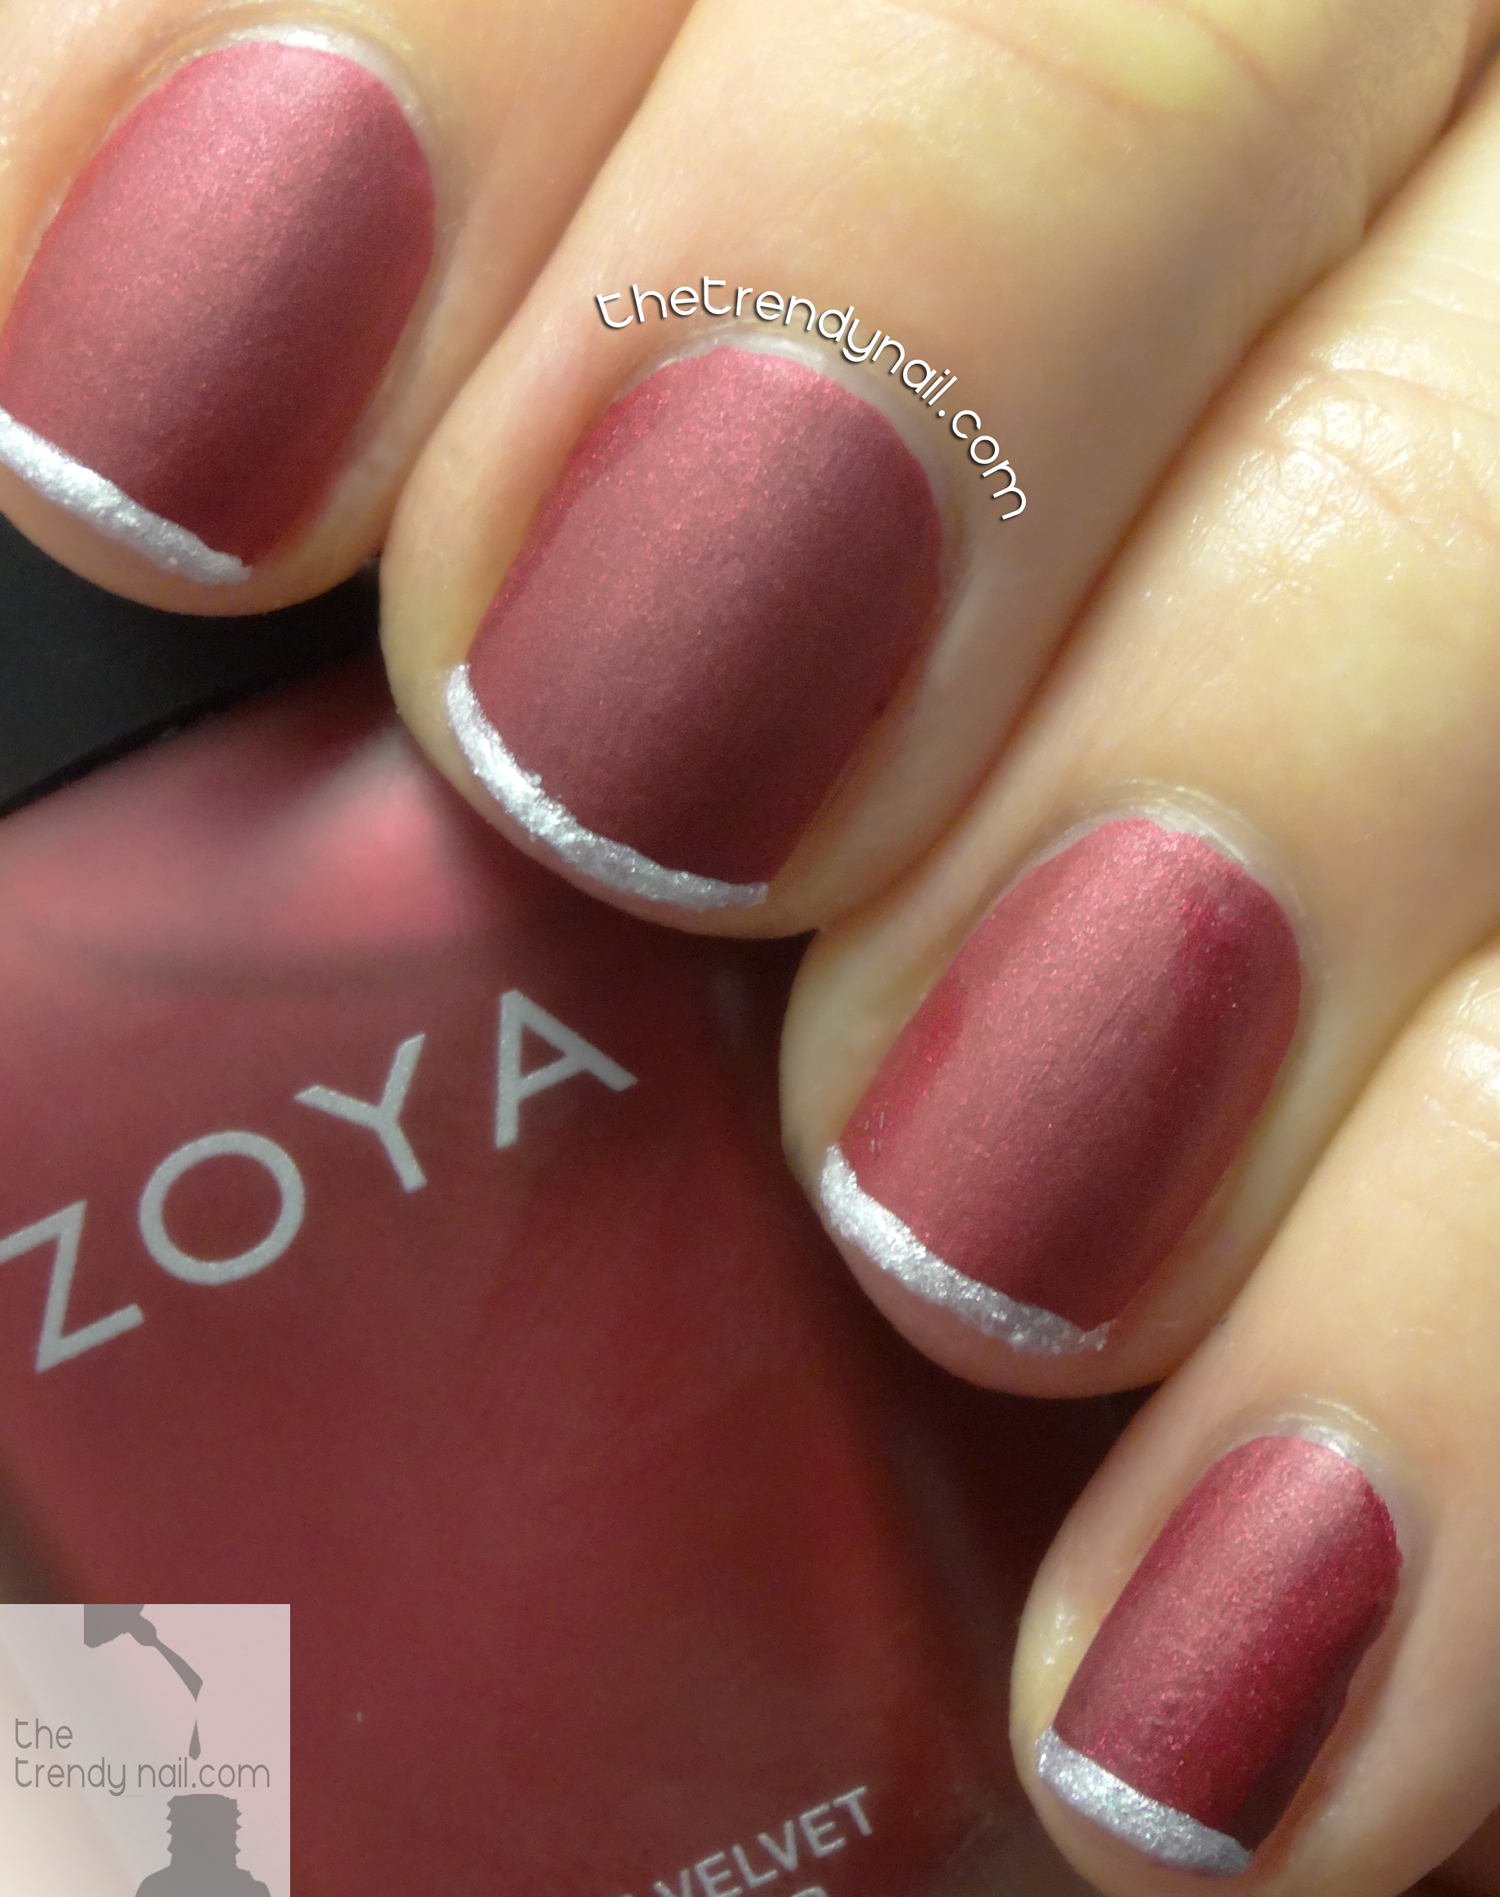 Zoya-Opi-Holiday-French-Manicure